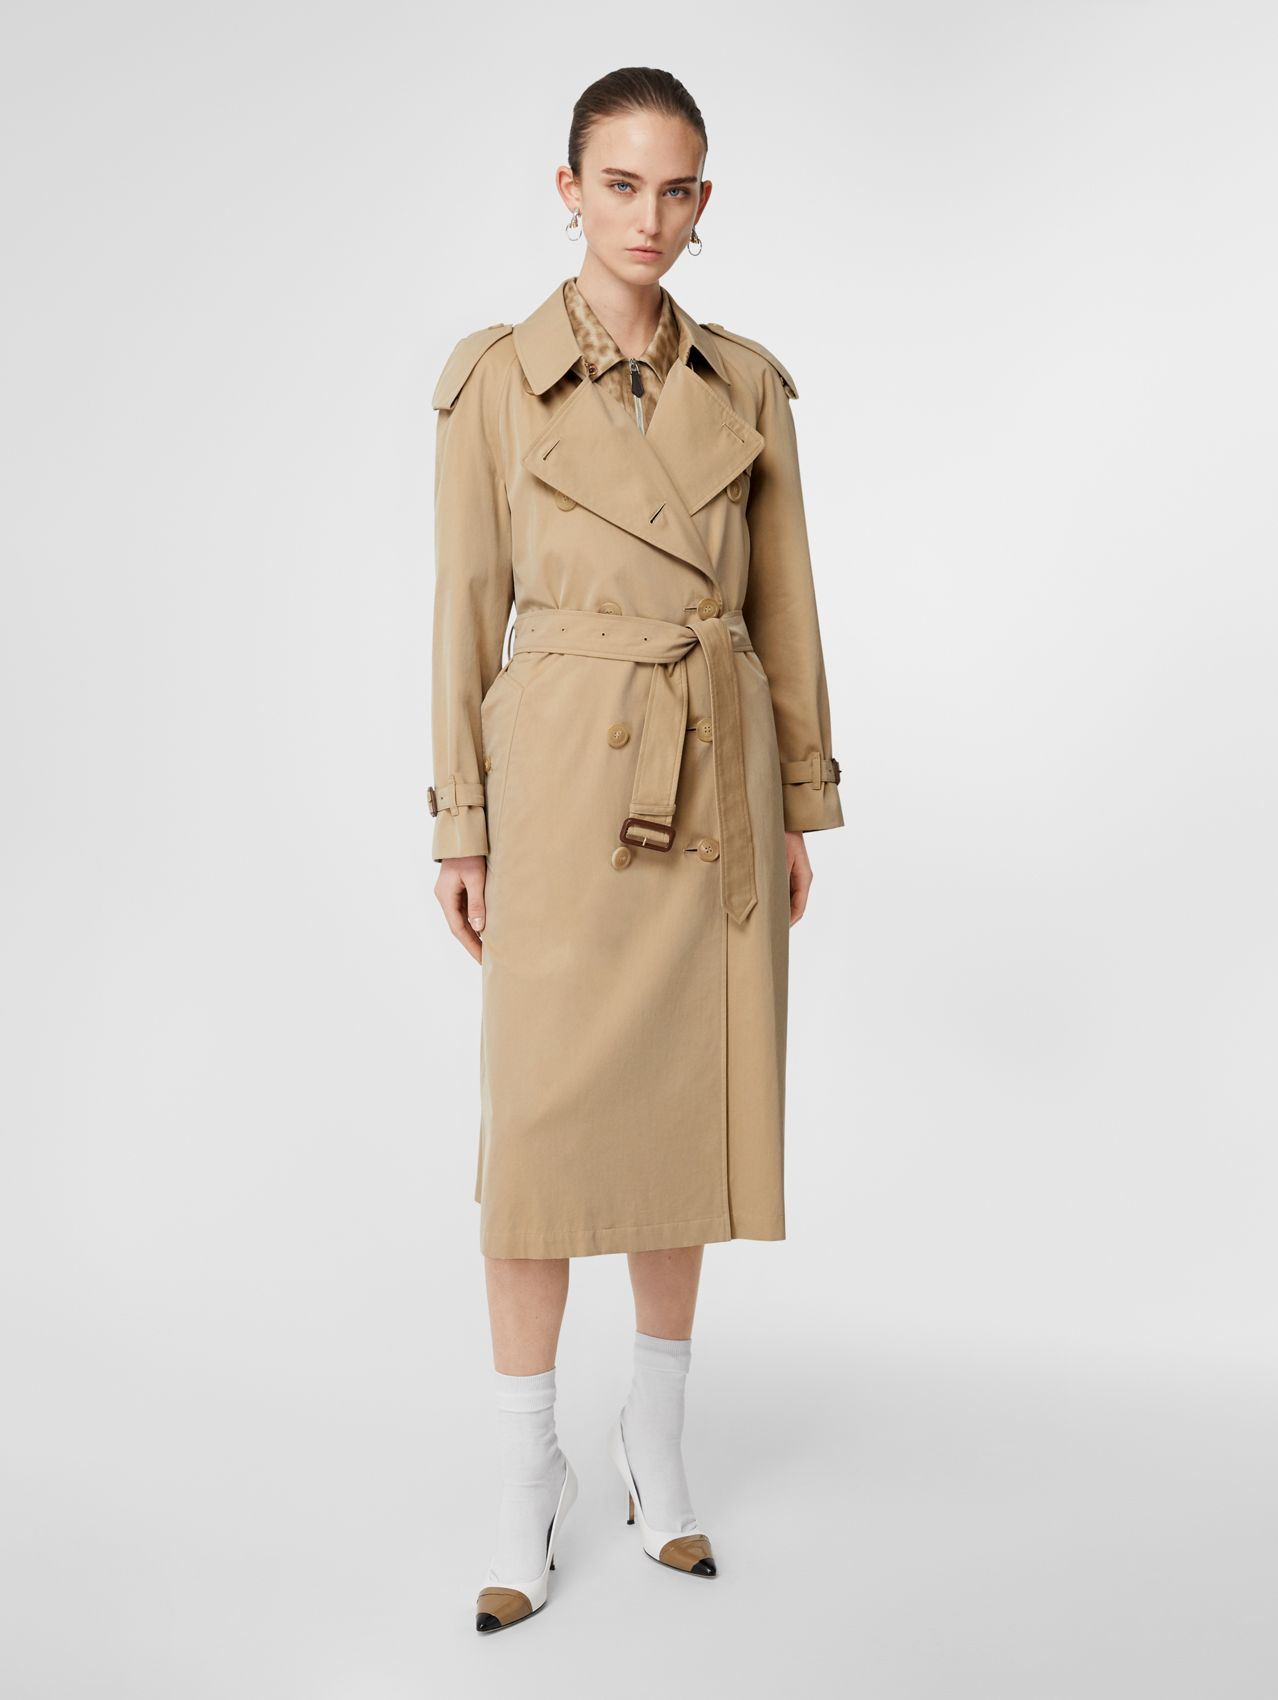 The Long Westminster Heritage Trench Coat in Honey